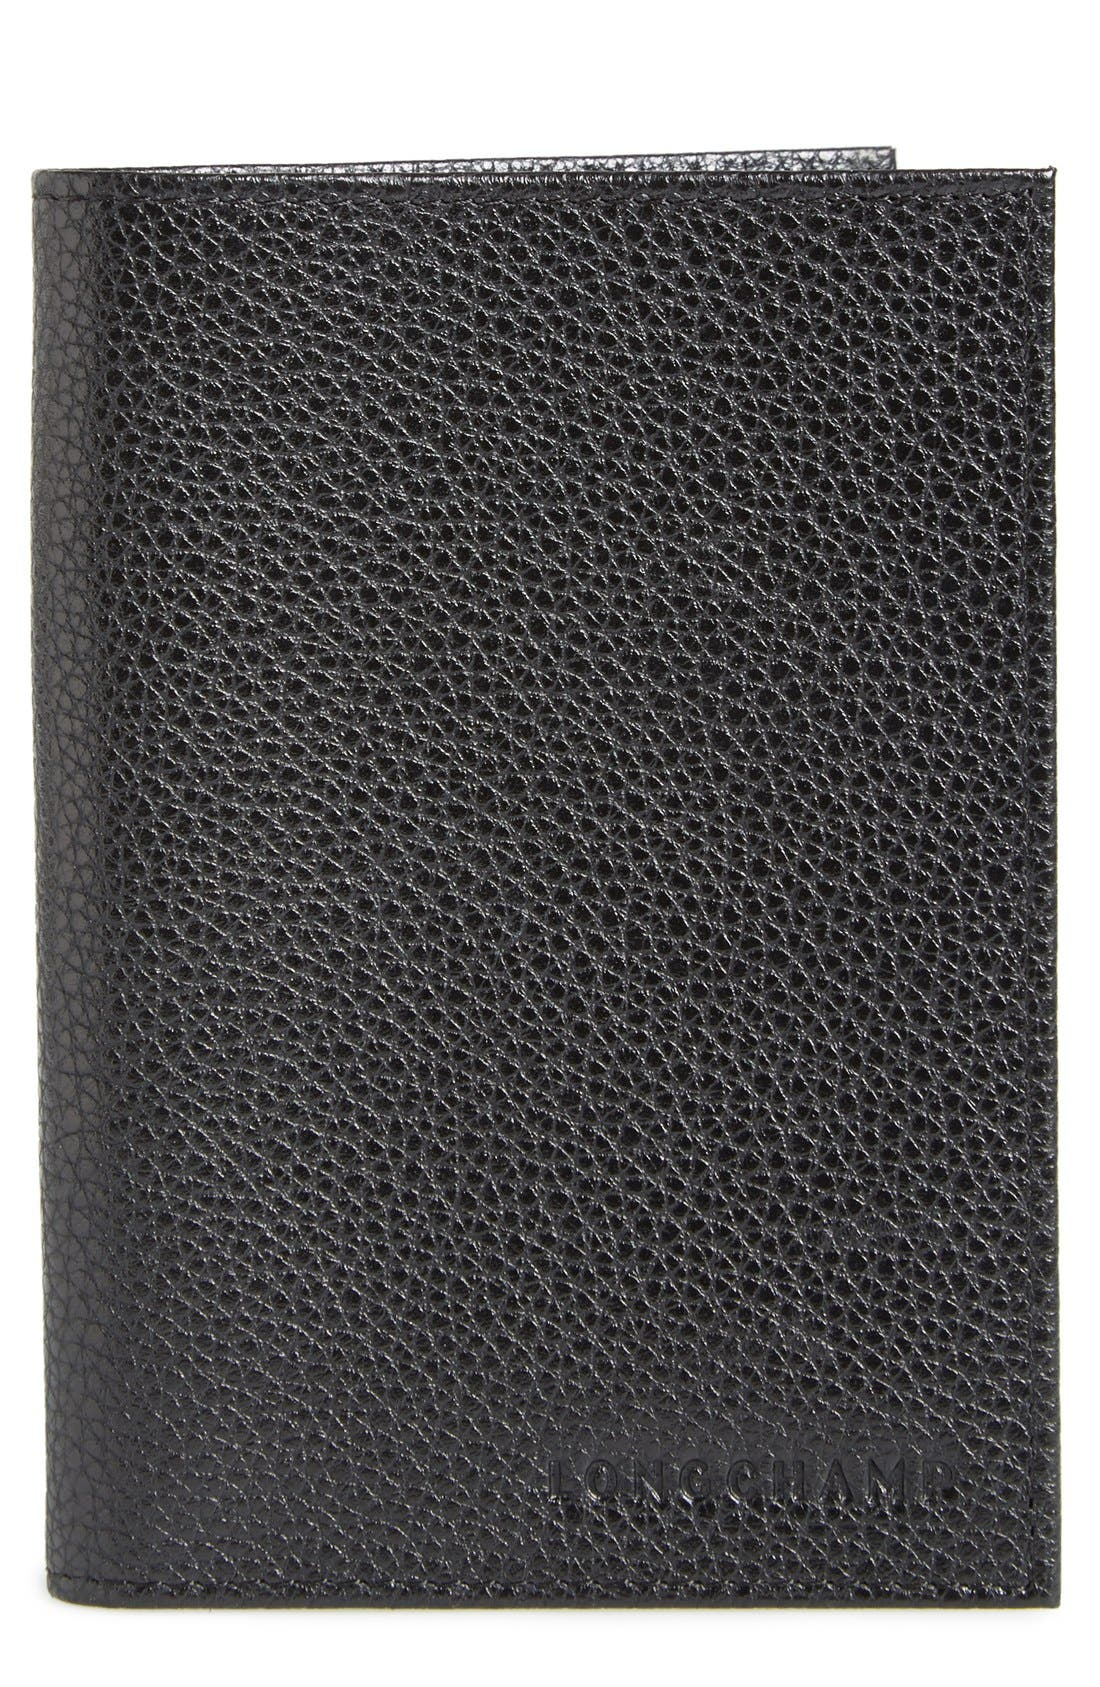 Alternate Image 1 Selected - Longchamp Calfskin Leather Passport Case